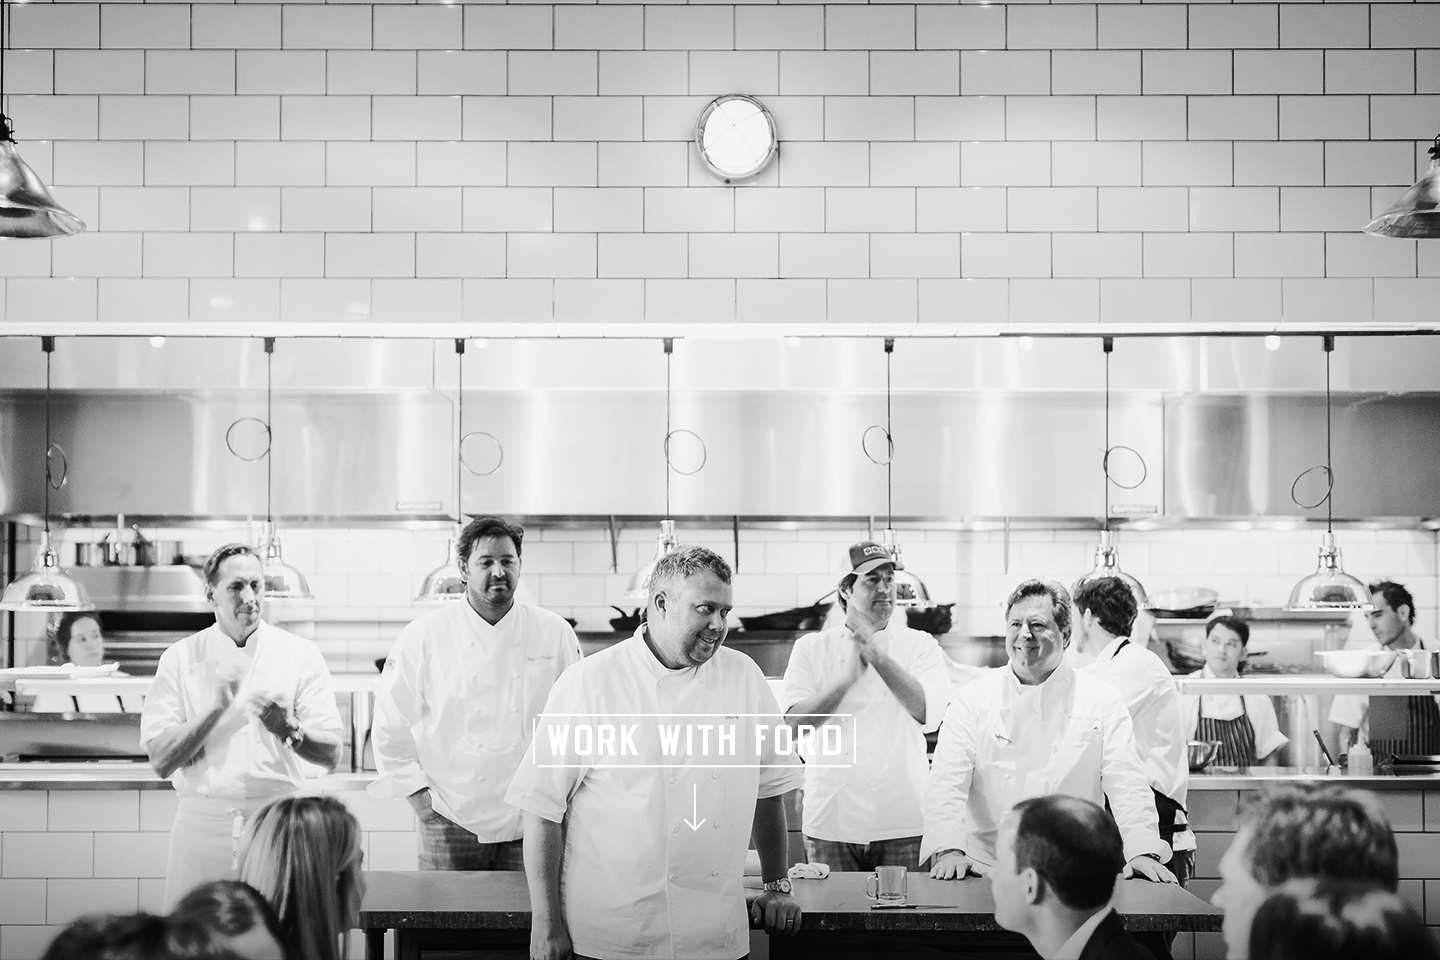 Chef Ford Fry | Ask about restaurant careers,